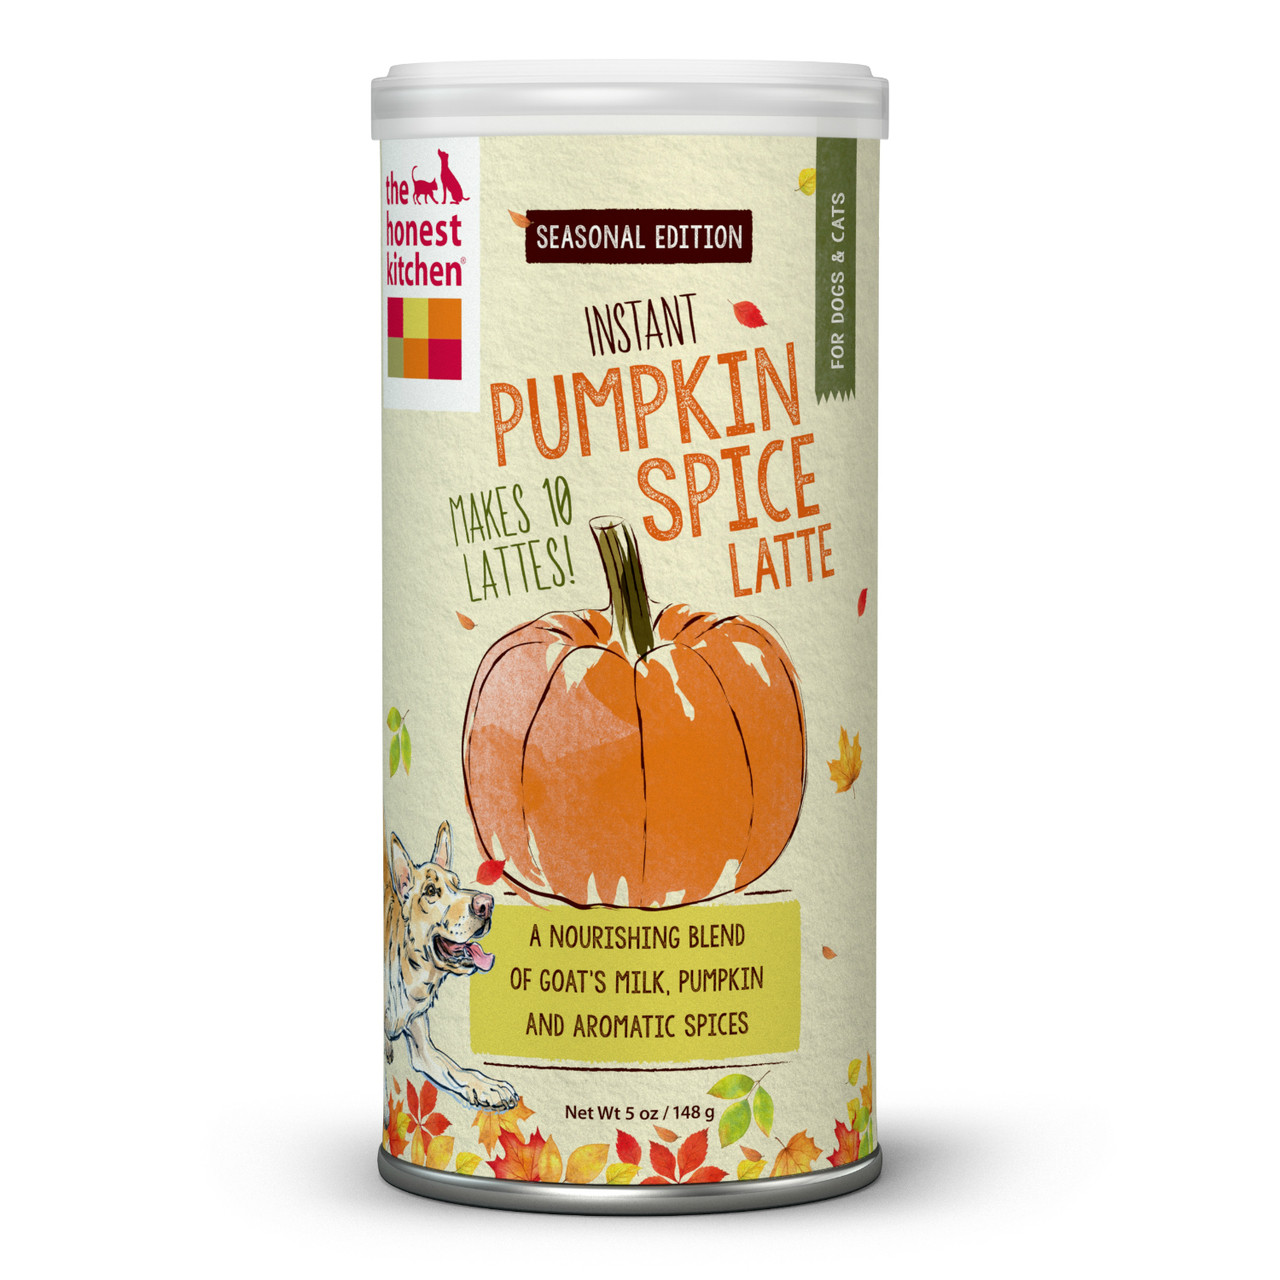 The Honest Kitchen Holiday Pumpkin Spice Latte 5 Ounces - TreatBuddy